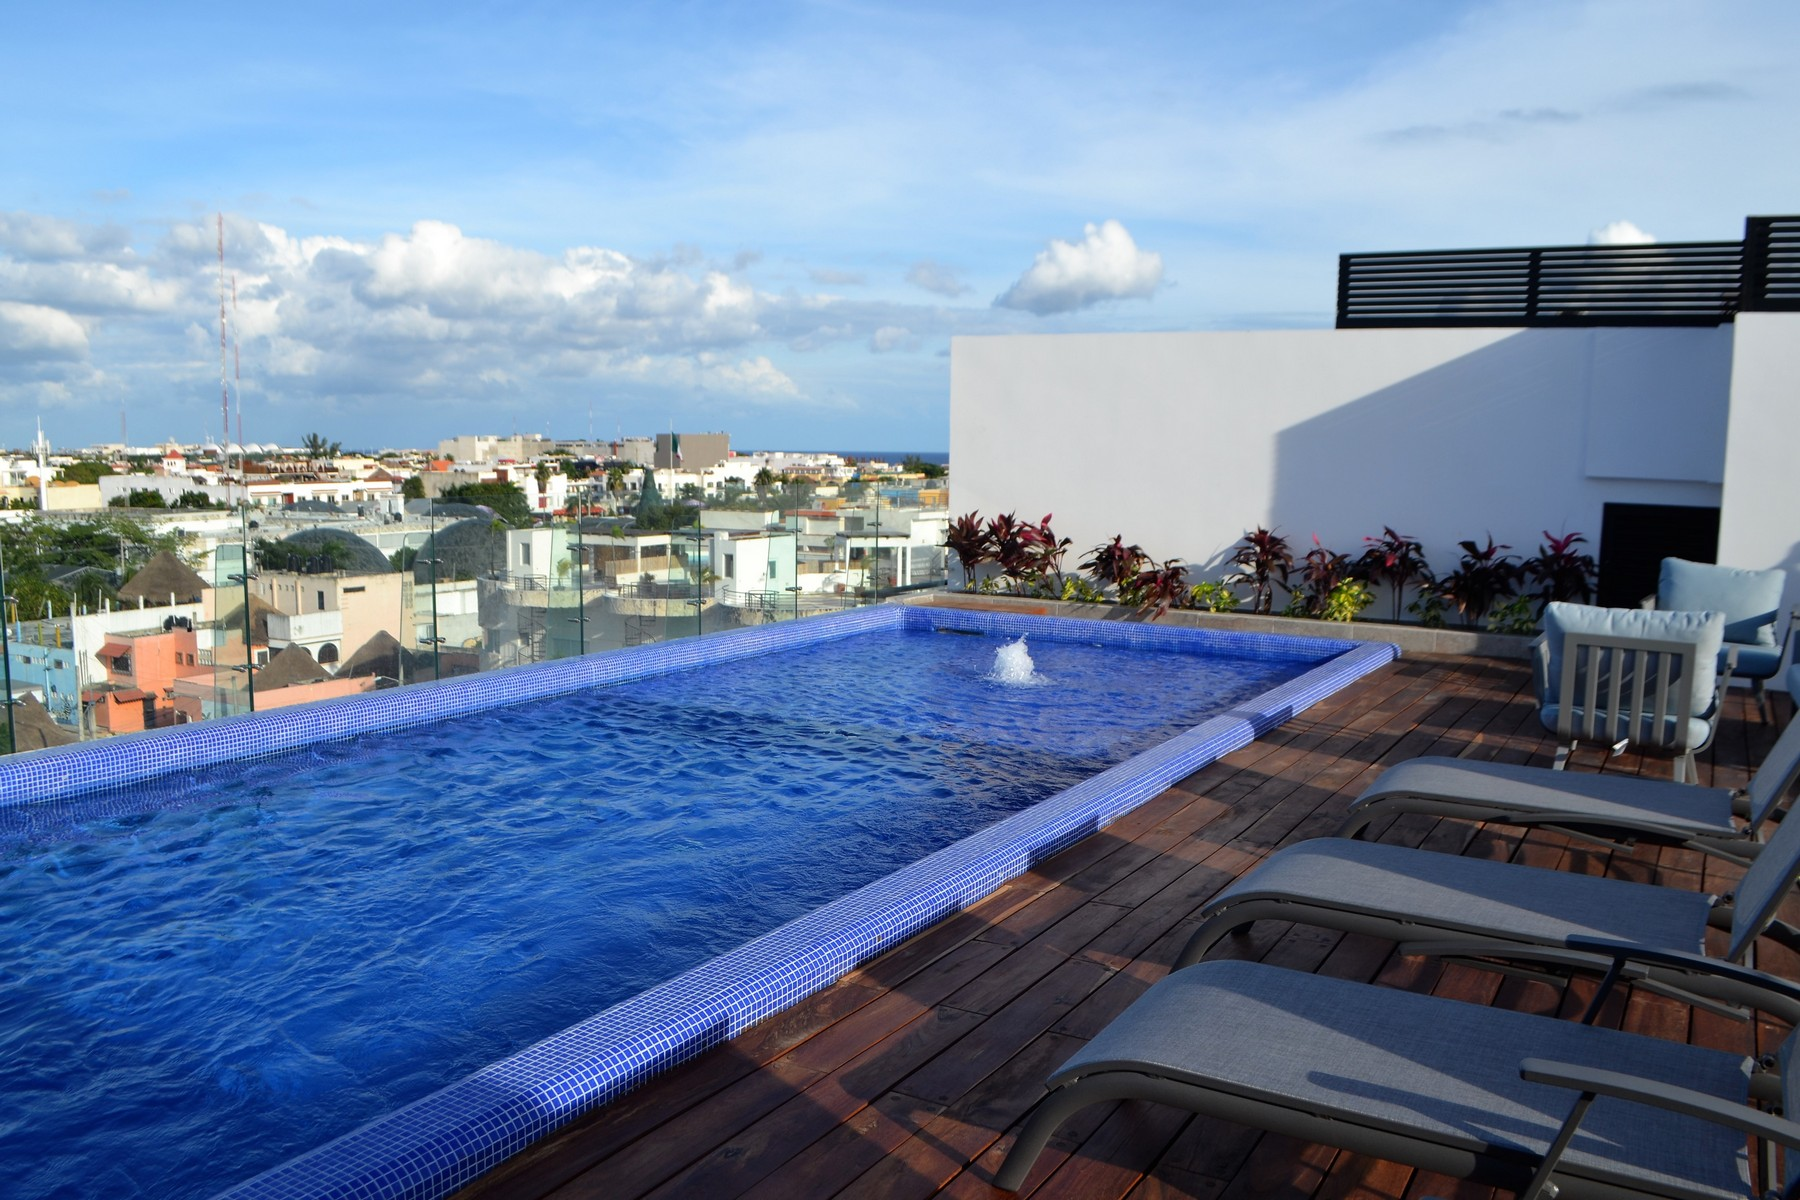 شقة بعمارة للـ Sale في SPACIOUS APARTMENTS IN LUXURIOUS AND WELL LOCATED NEW BUILDING Spacious apartments in luxurious and well located new building 6th North Street, Playa Del Carmen, Quintana Roo, 77710 Mexico